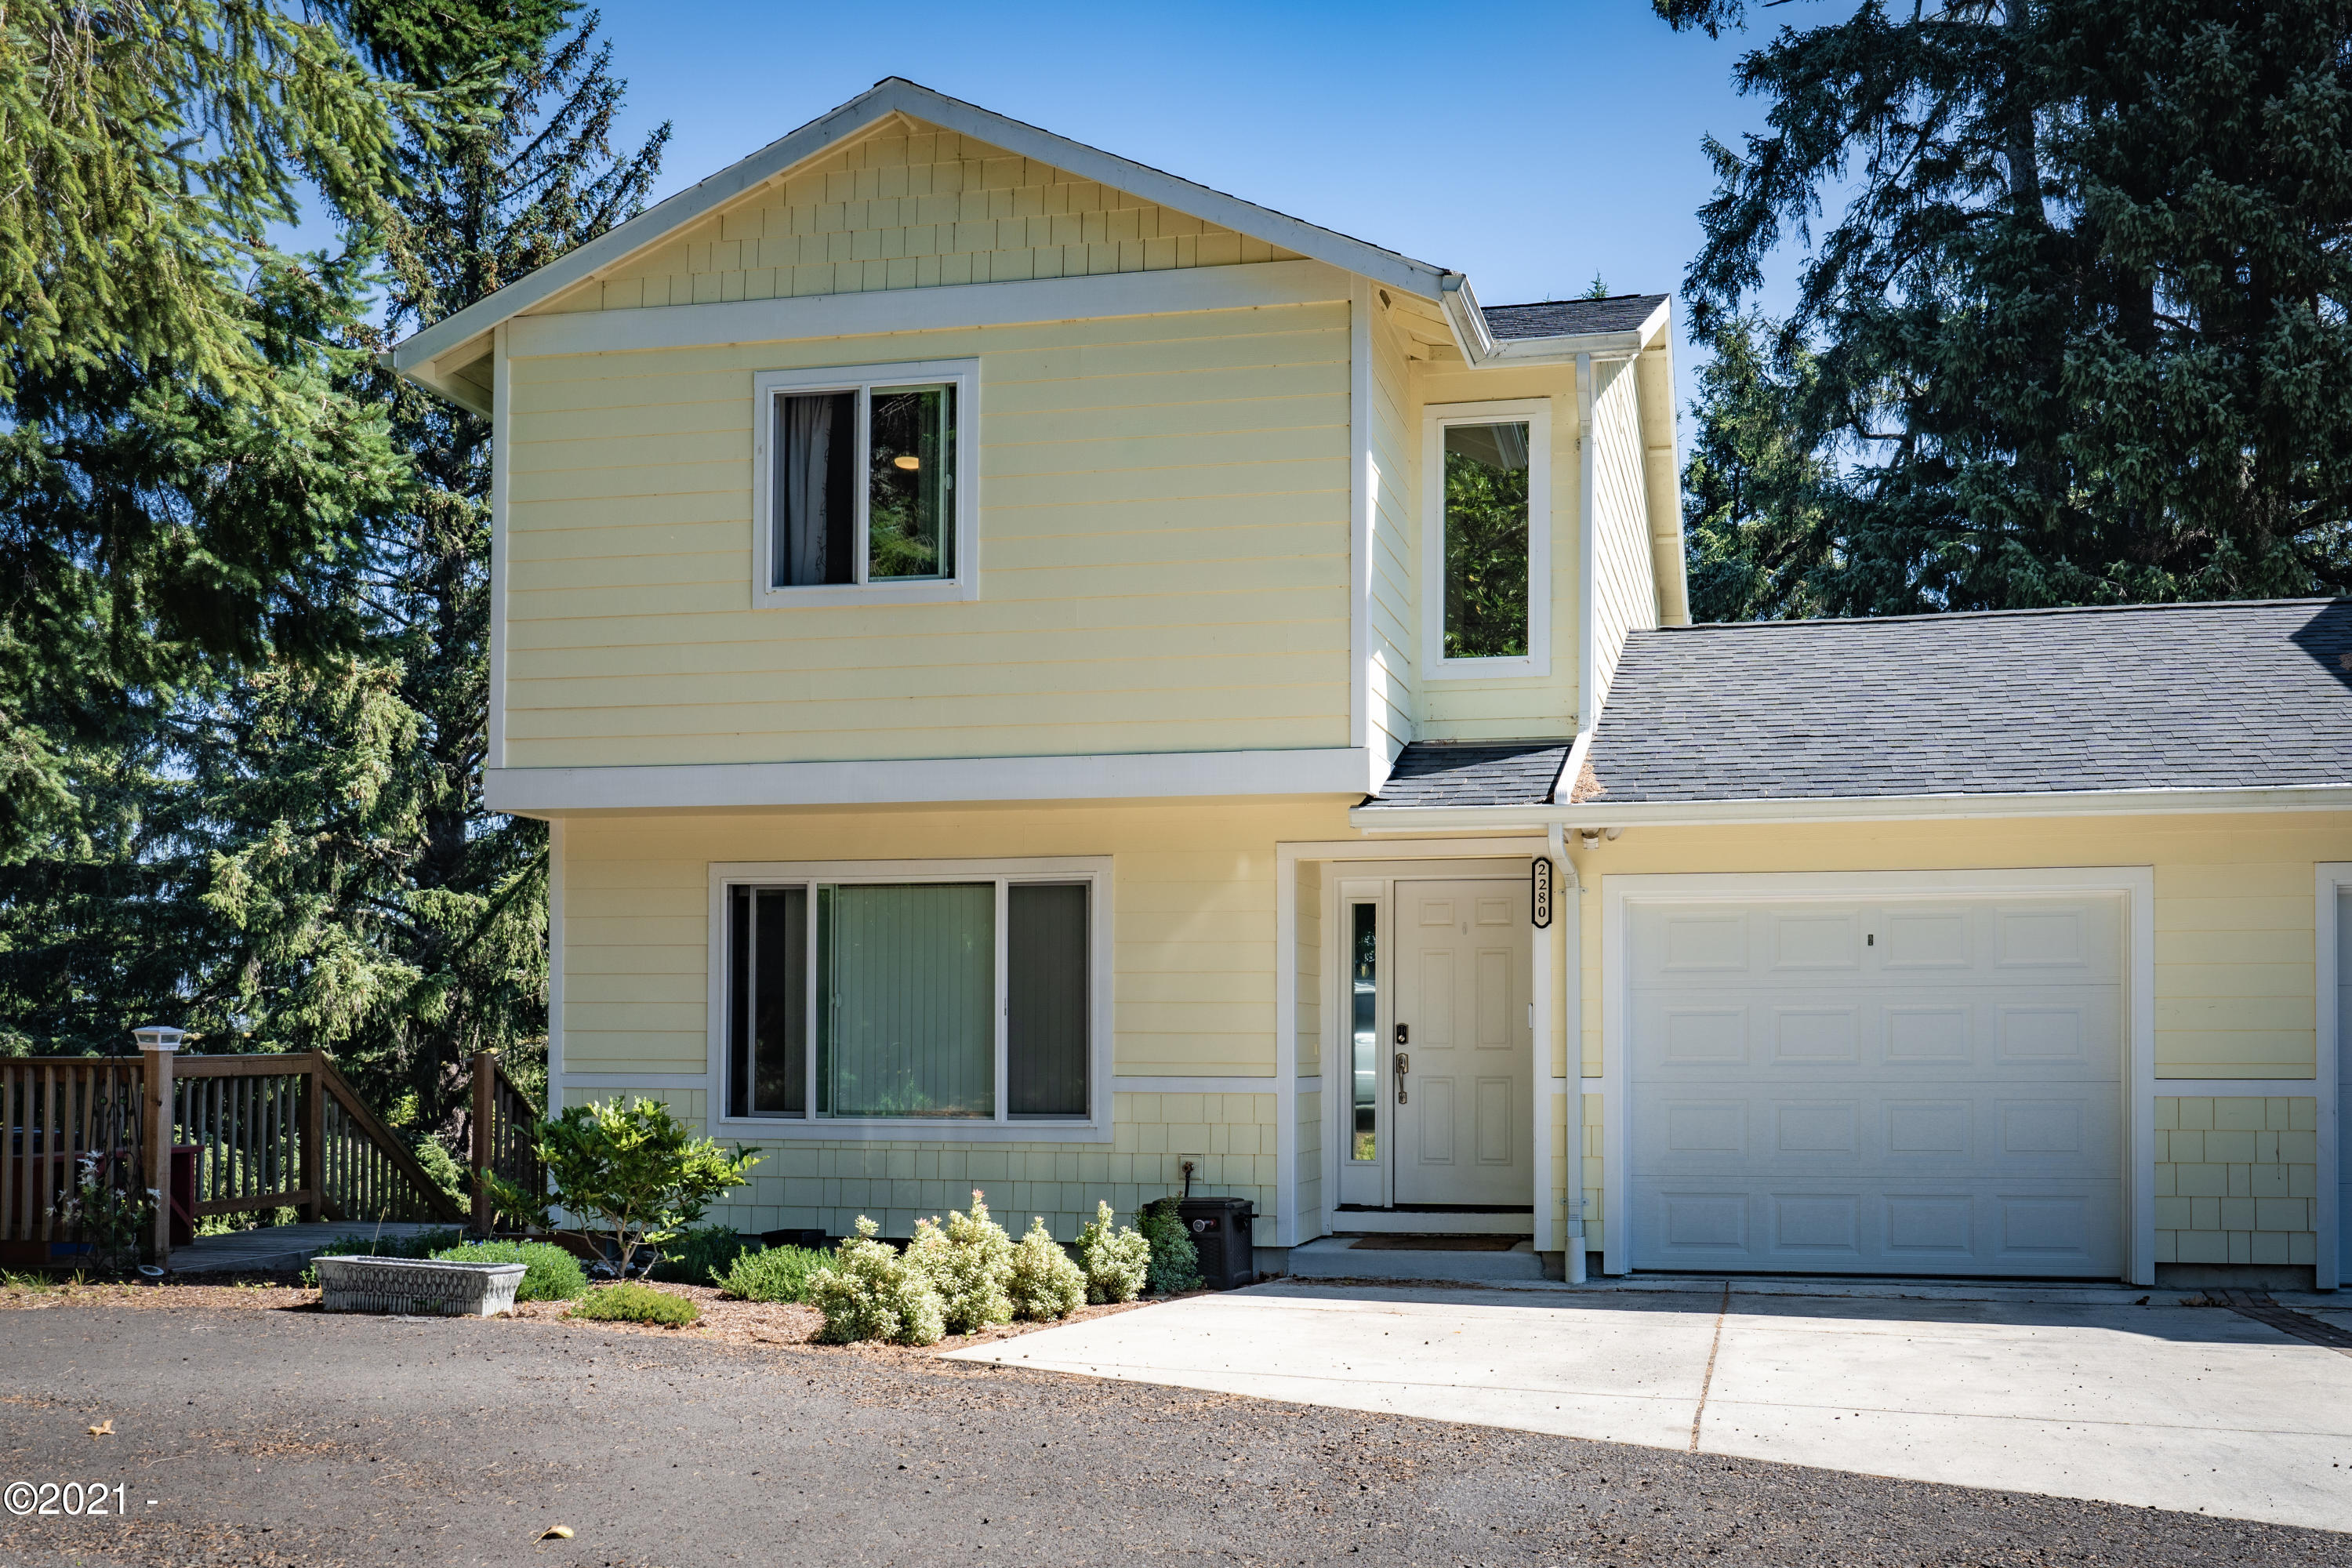 2280 NE Surf Ave, Lincoln City, OR 97367 - Front of townhouse.